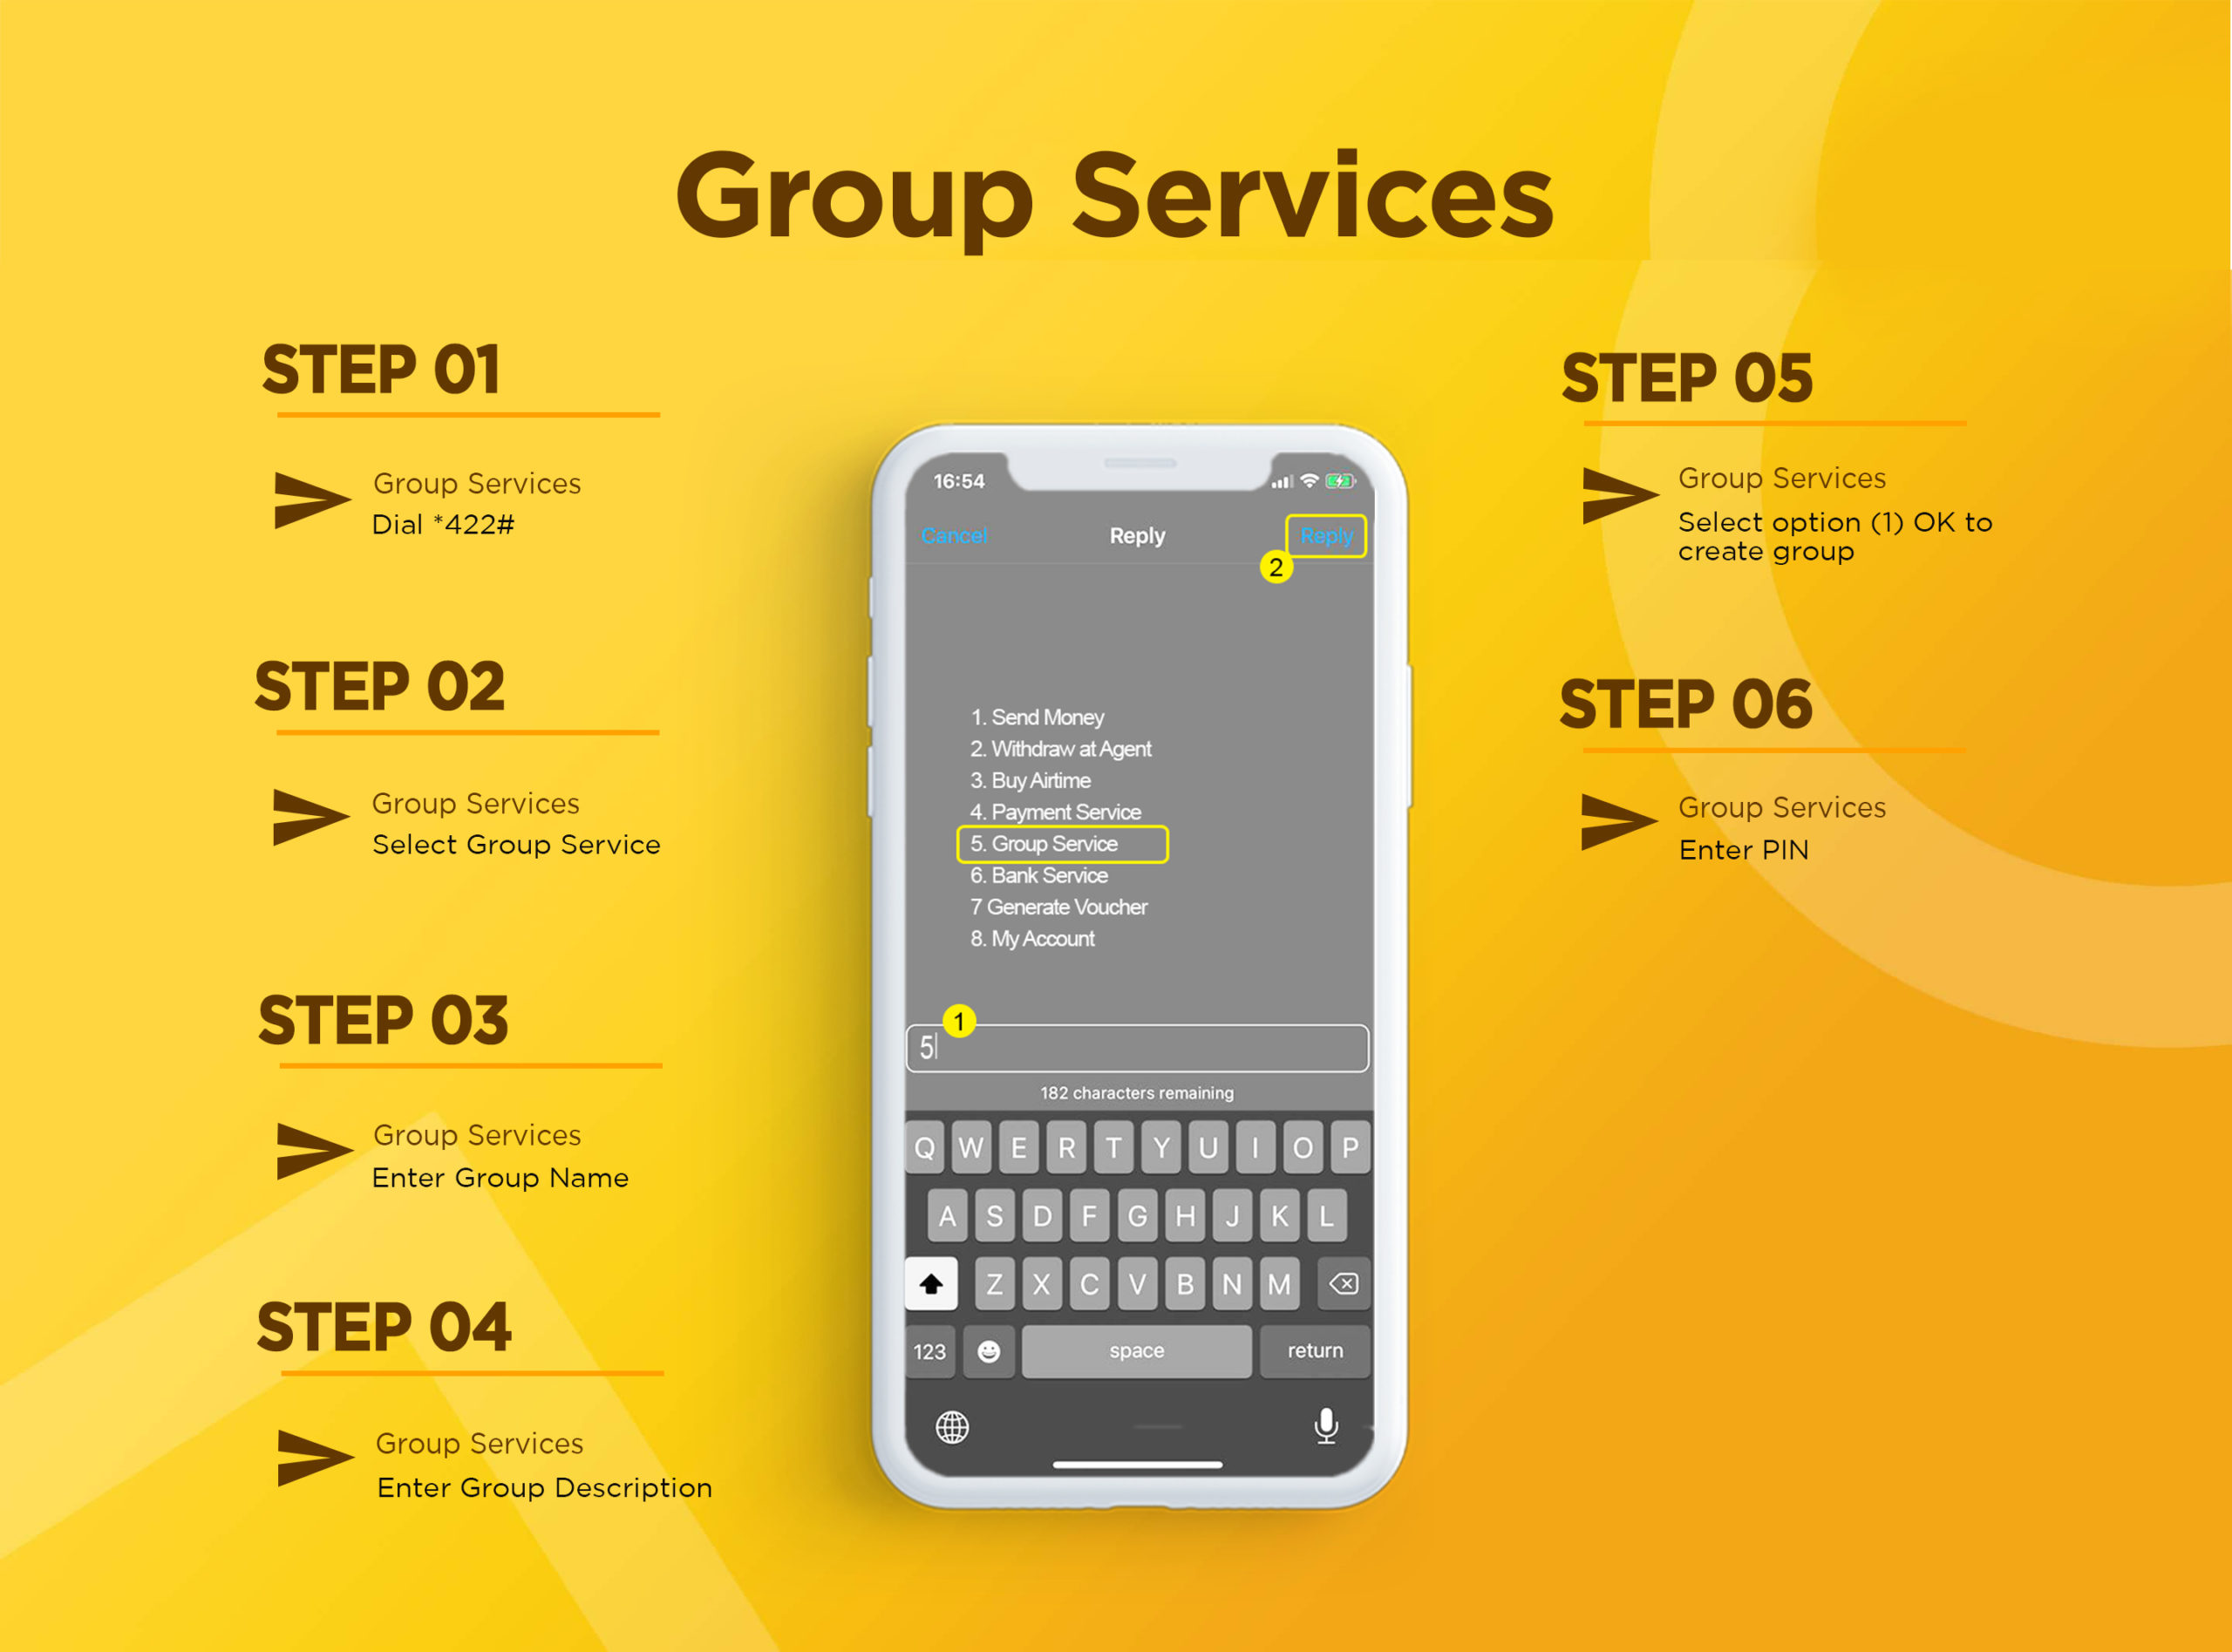 G-Money Group Services